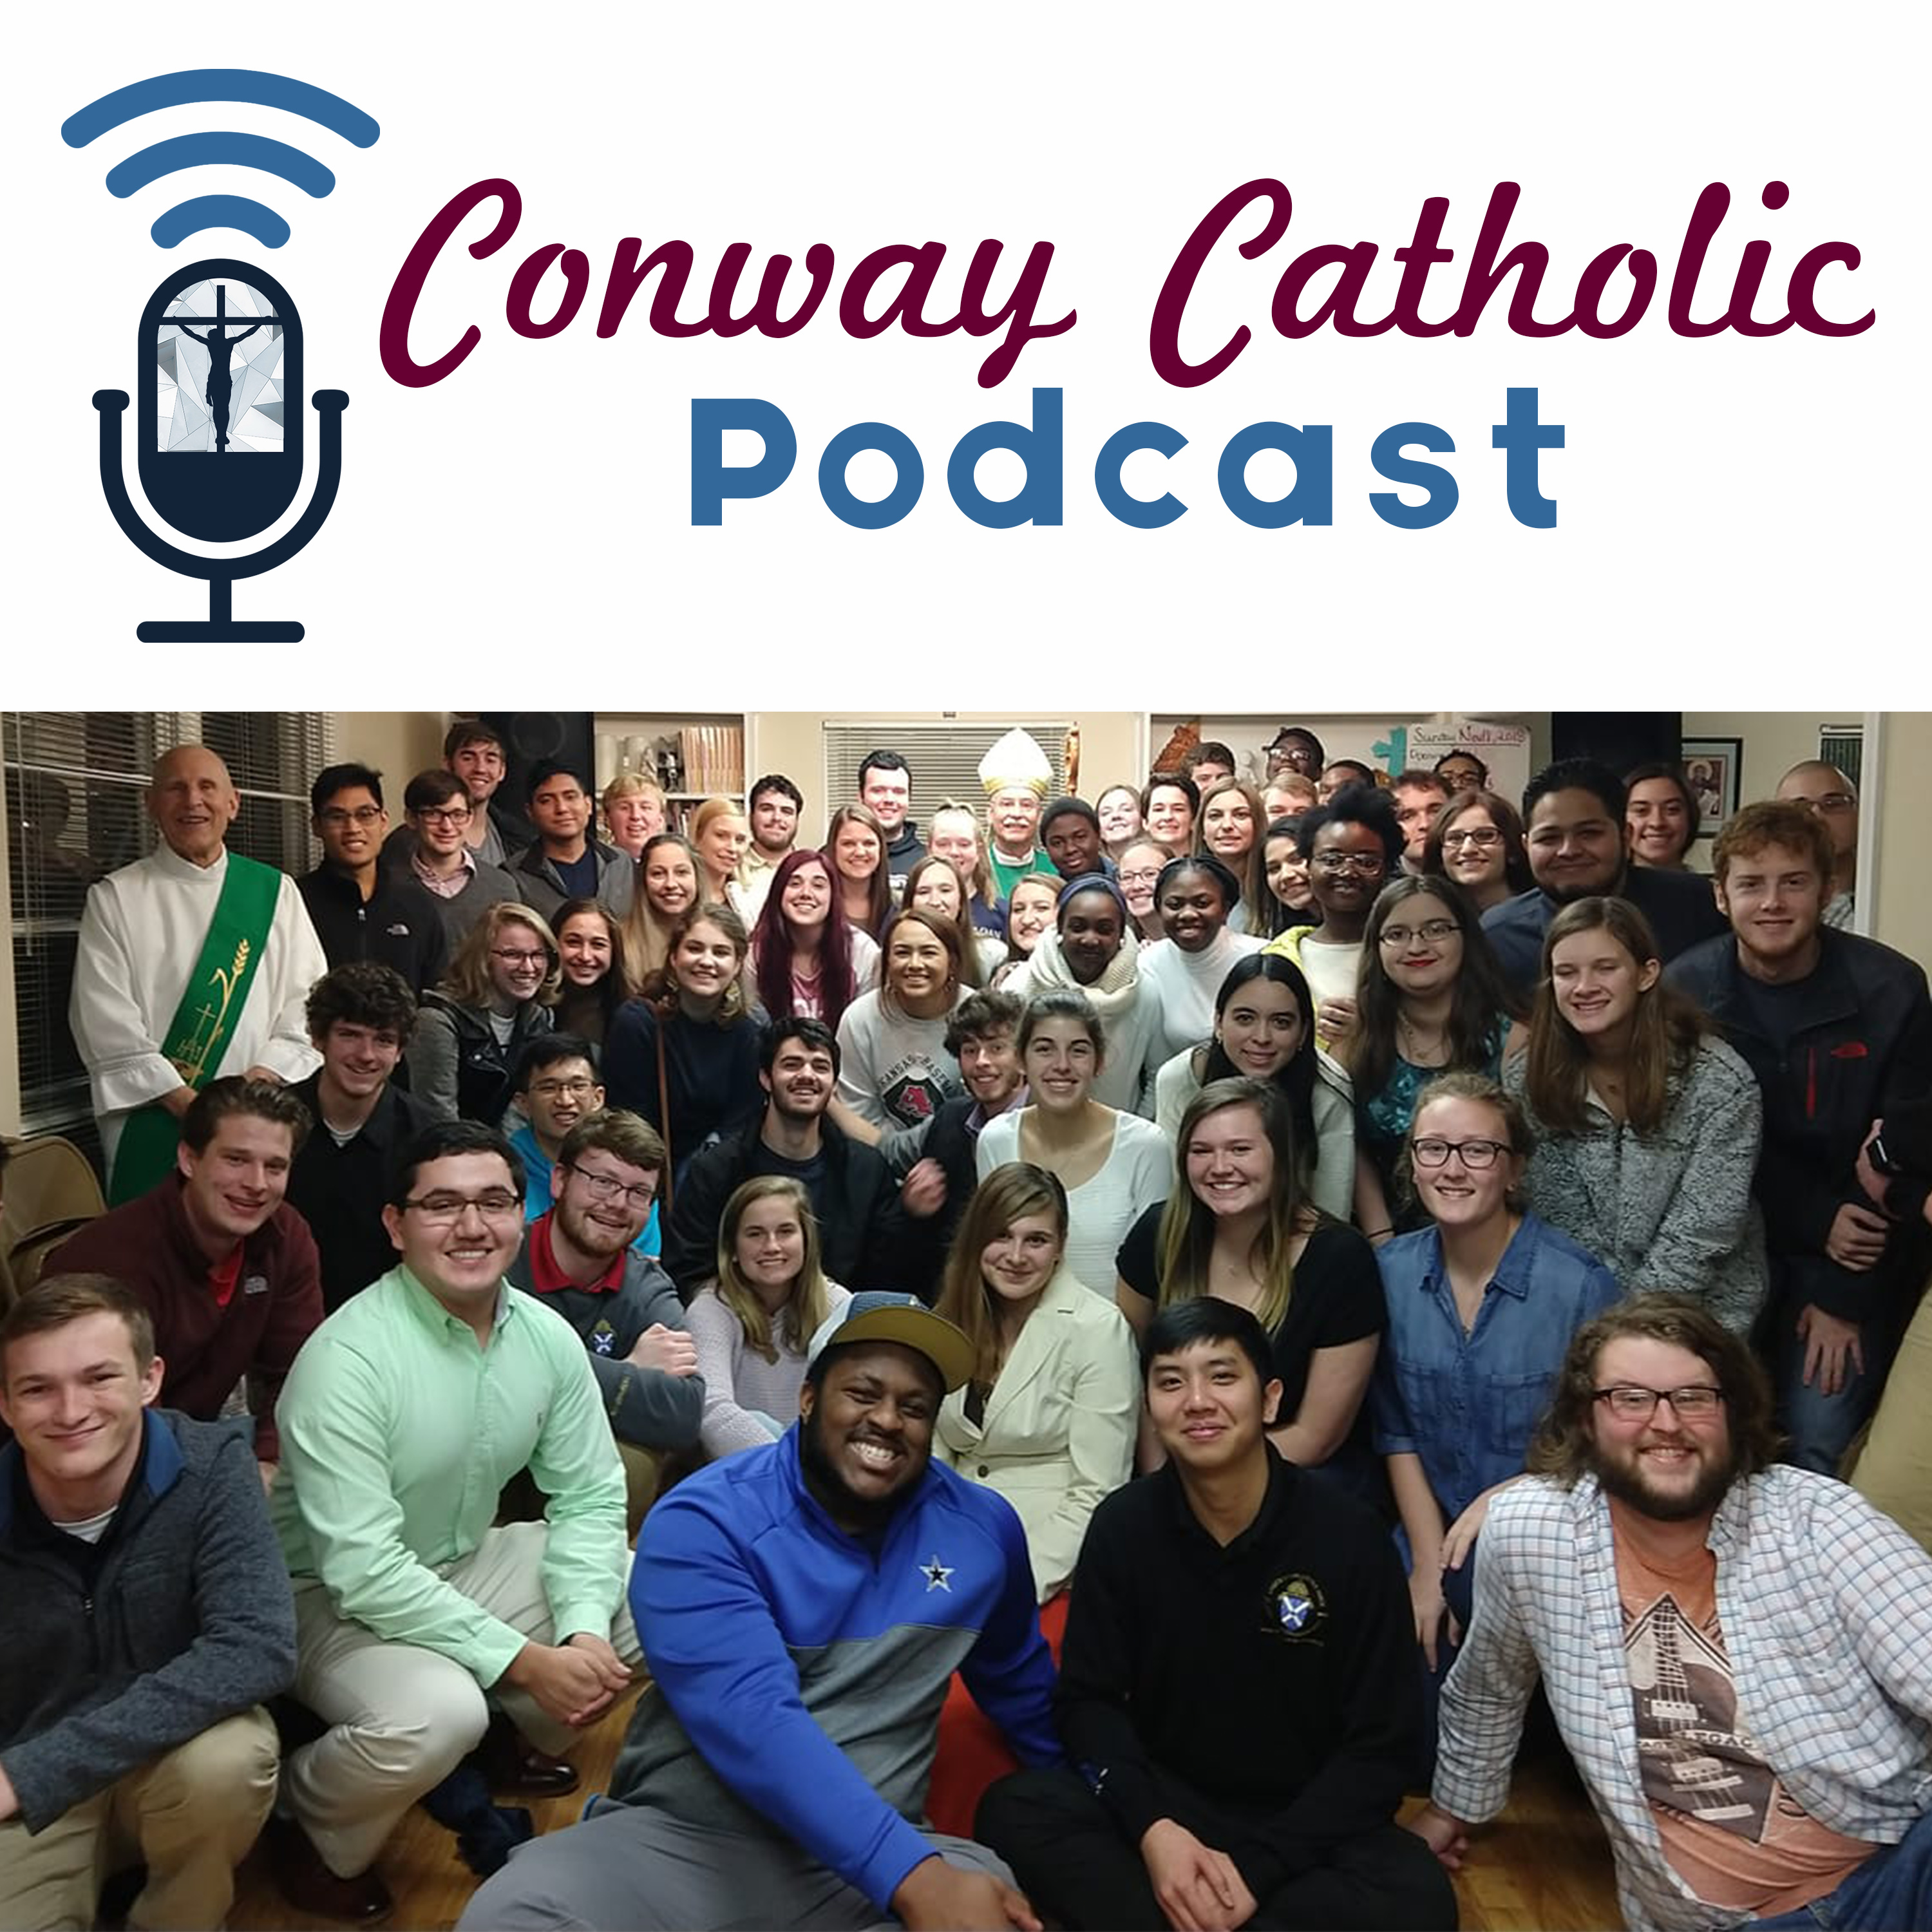 Welcome to the Conway Catholic Podcast